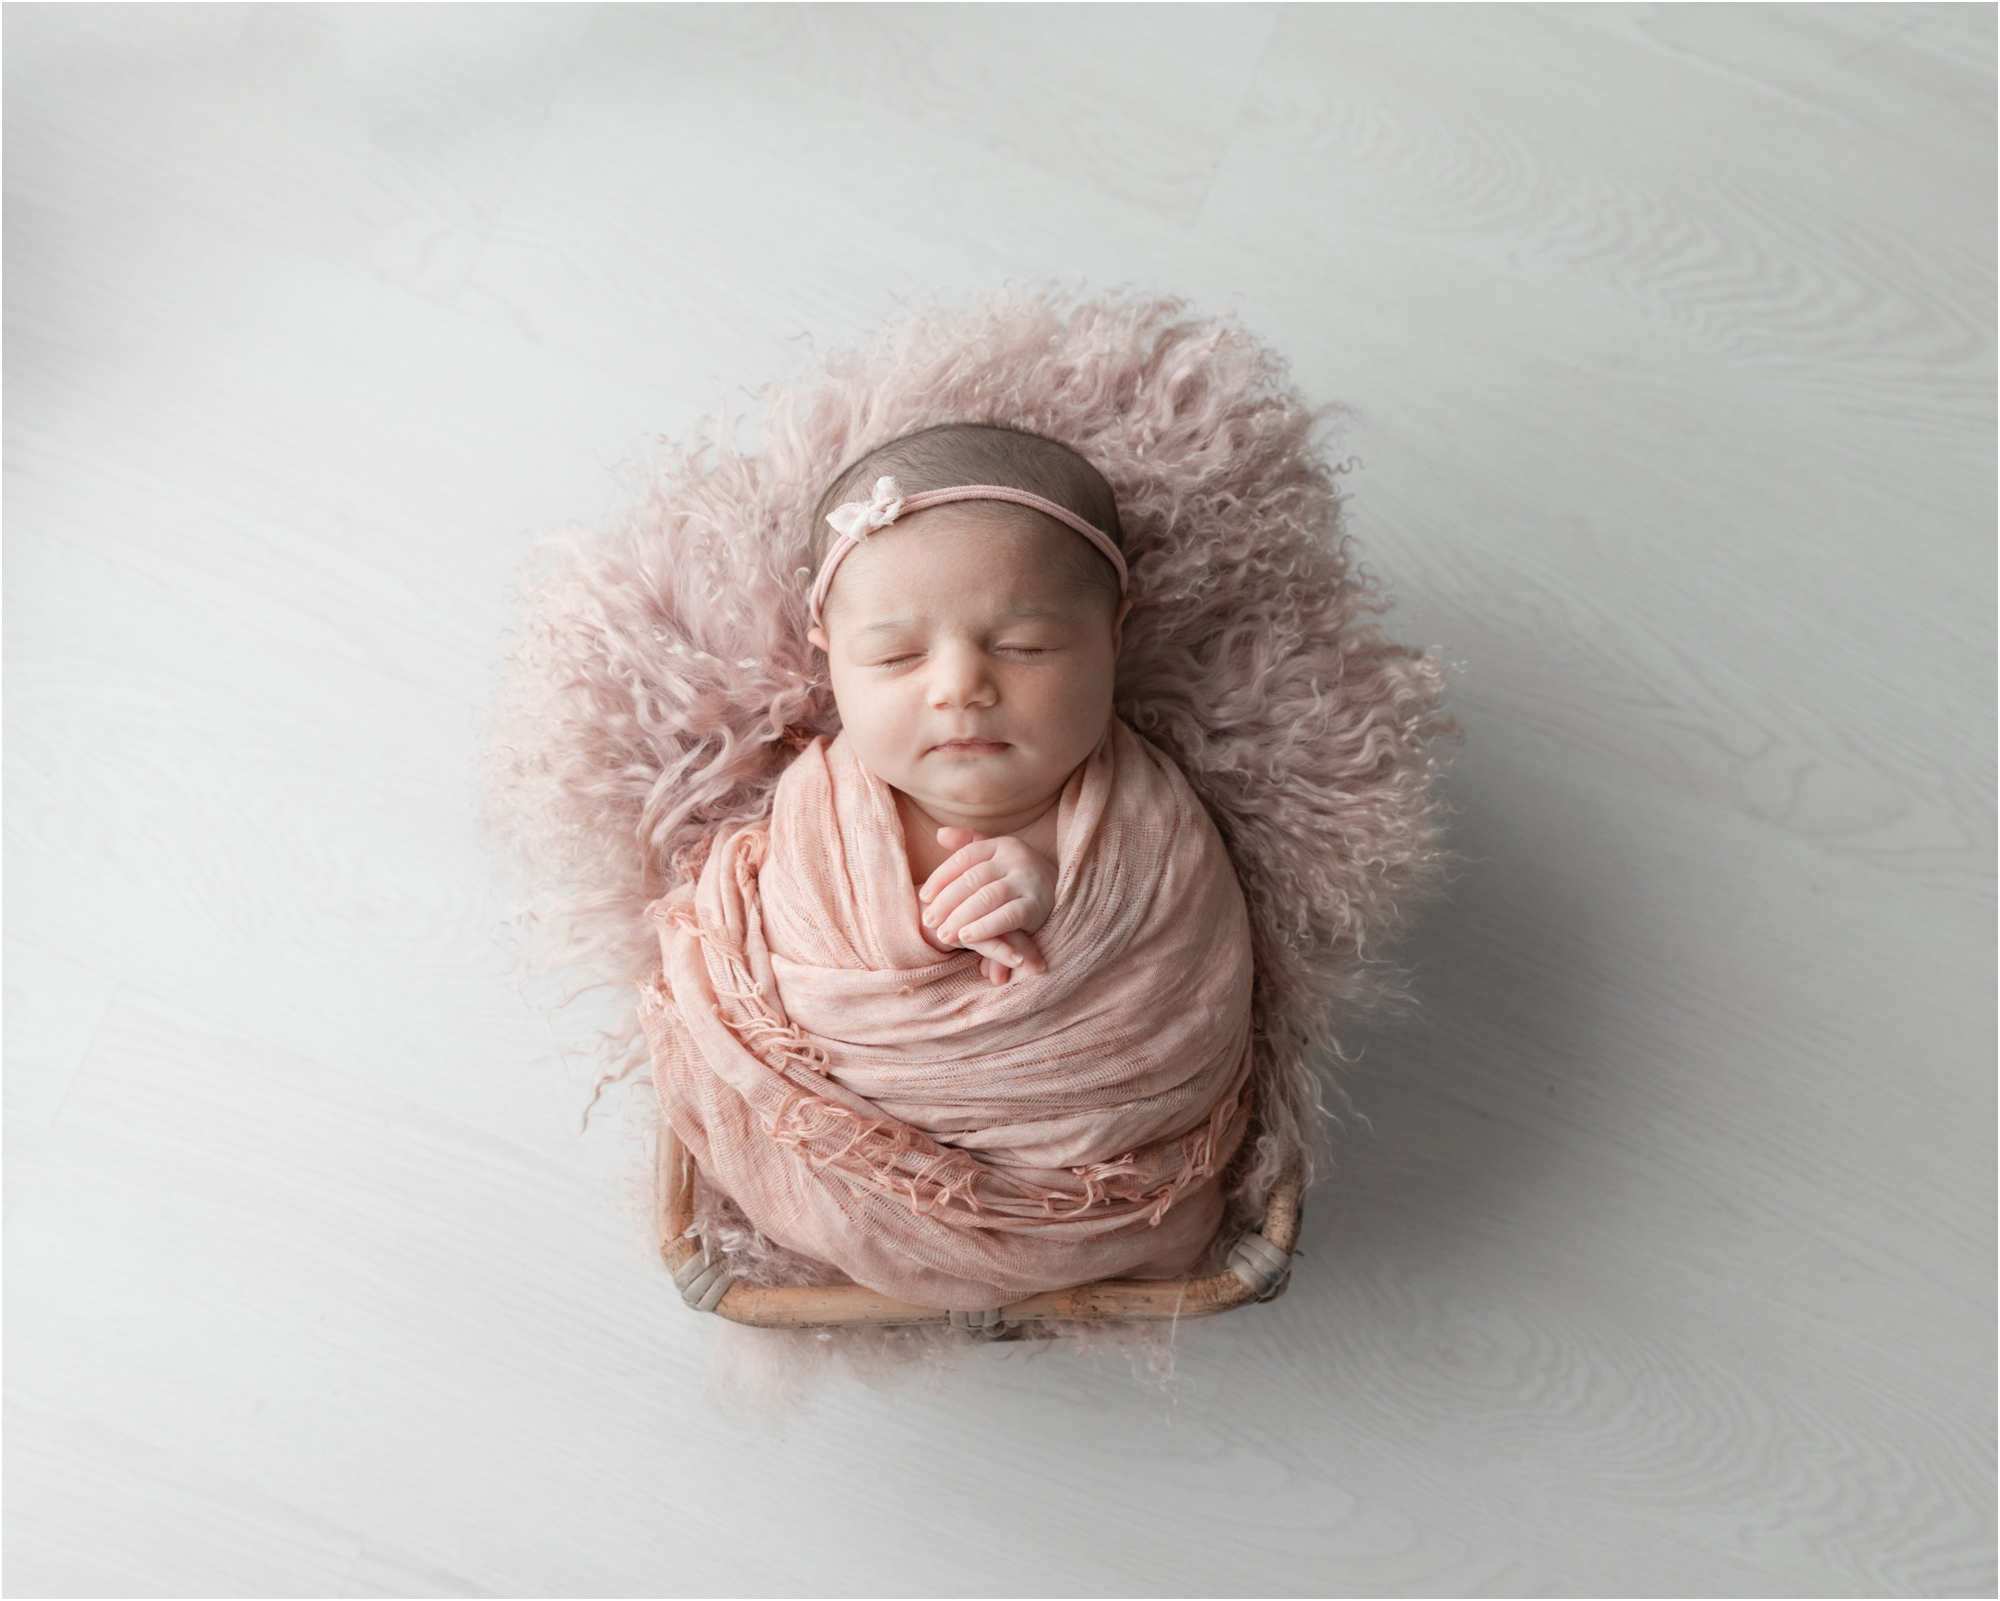 Baby girl in basket during posed newborn session. Photo by Lifetime of Clicks Photography.